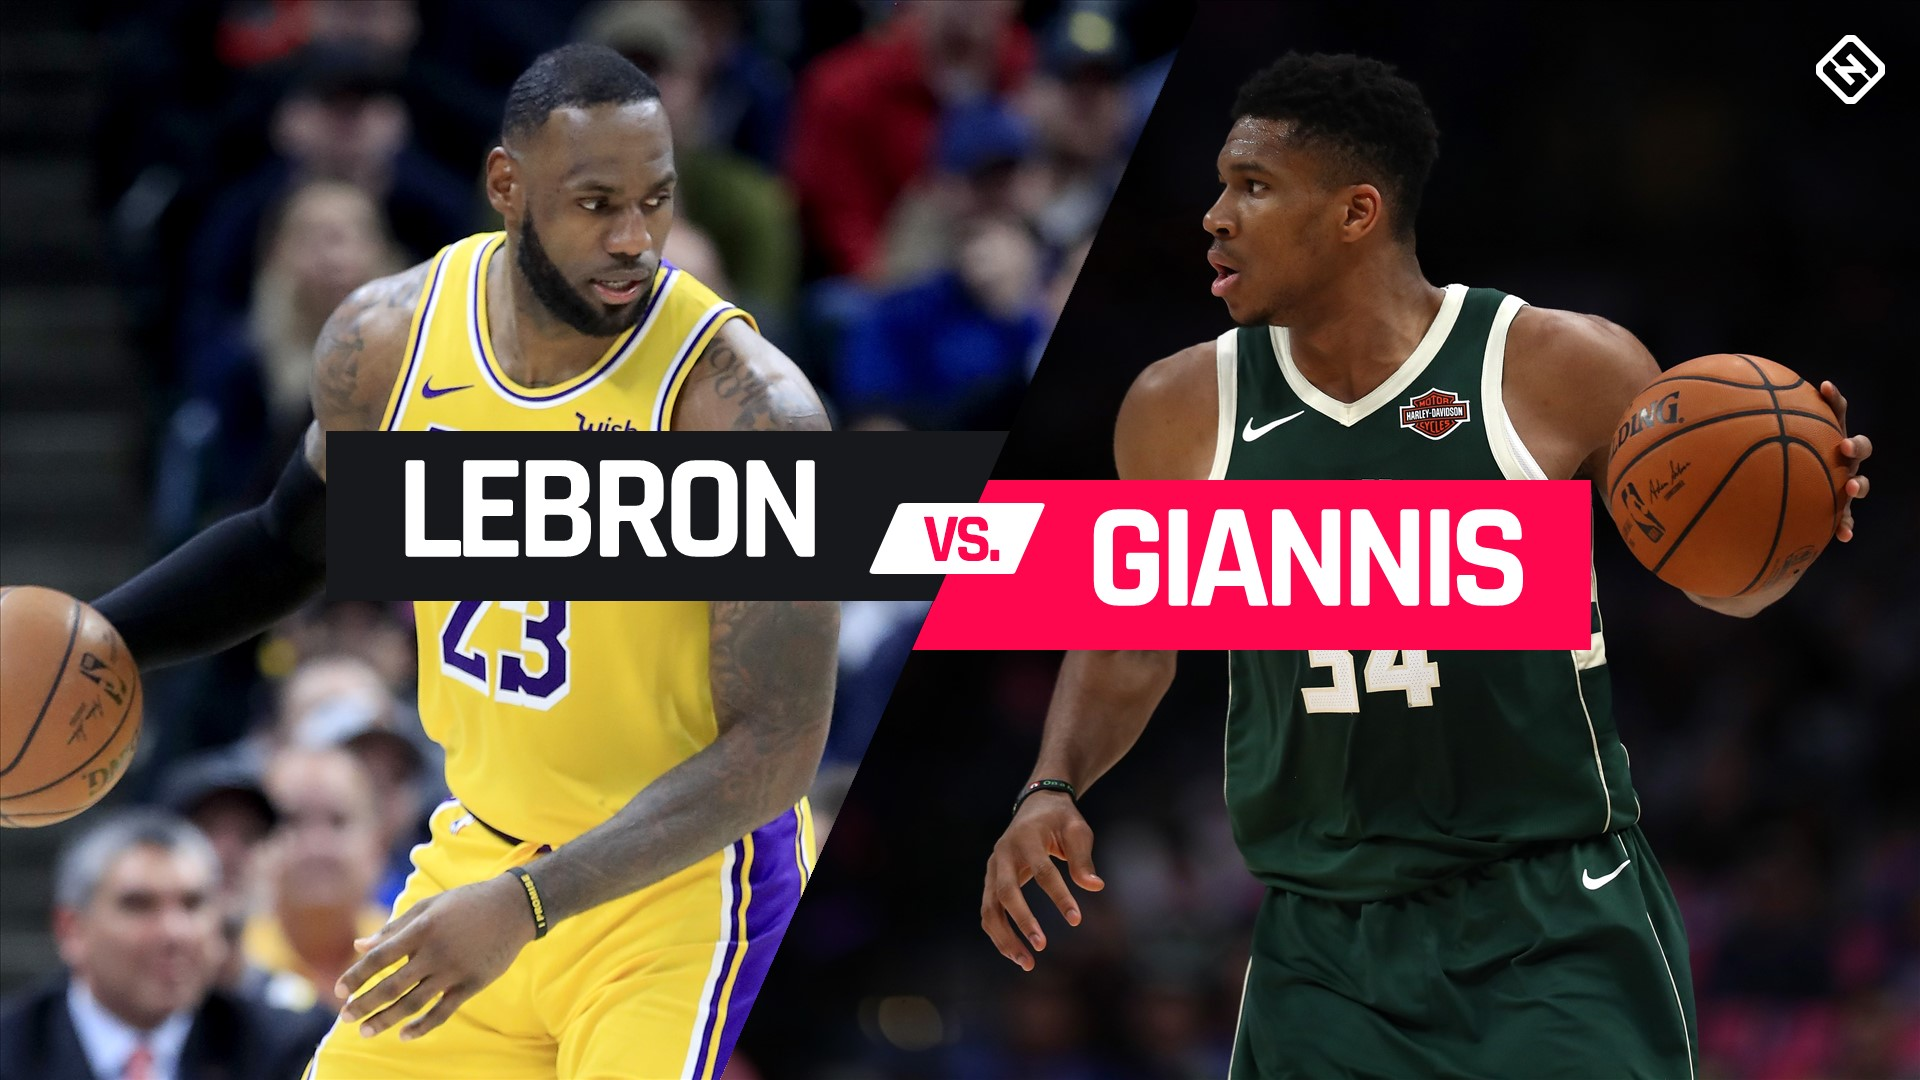 Lebron James Vs Giannis Antetokounmpo Which Star Leads The